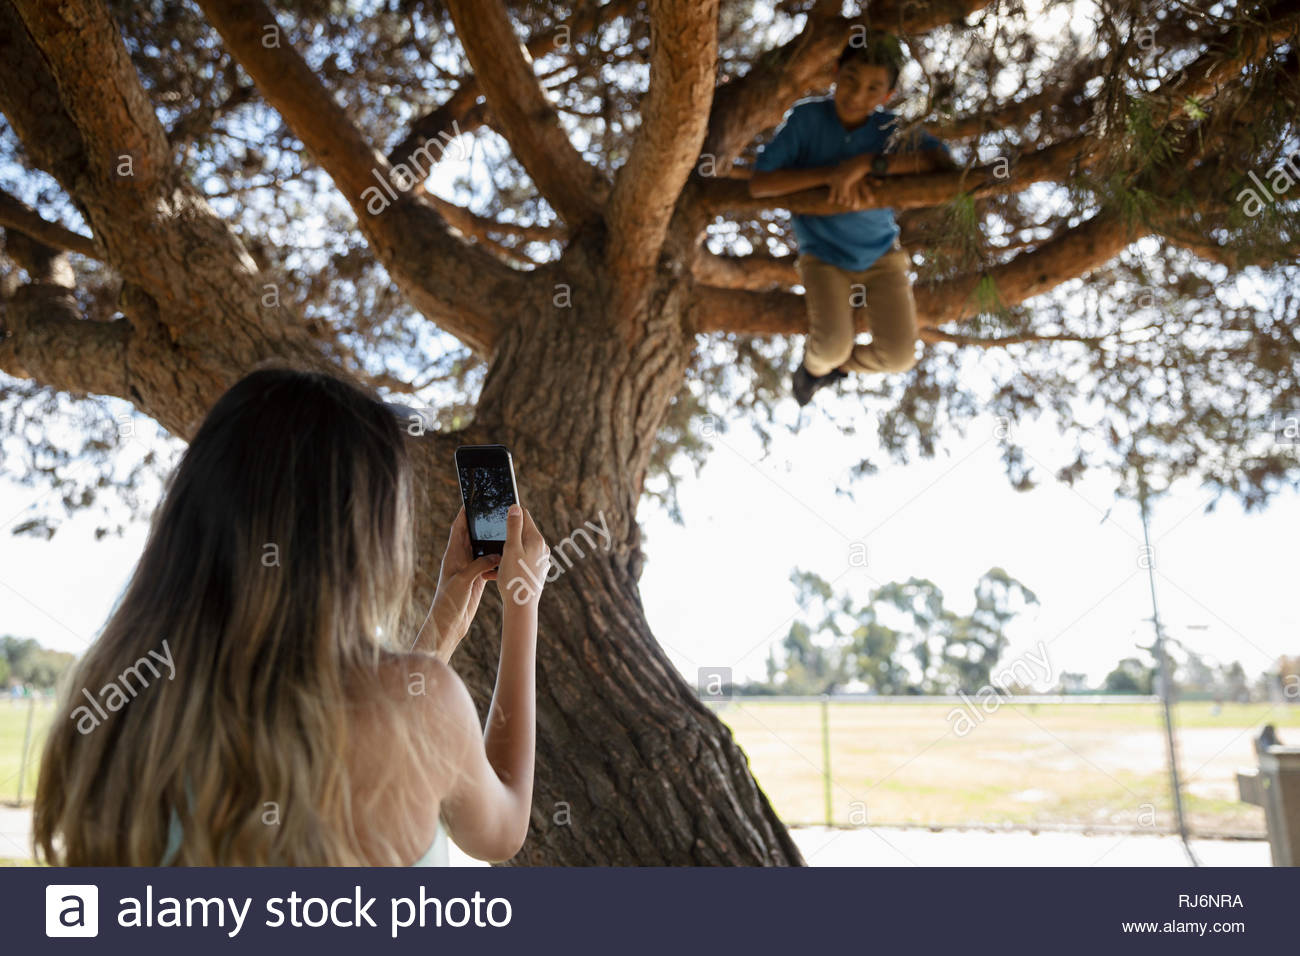 Girl with camera phone photographing brother climbing park tree - Stock Image